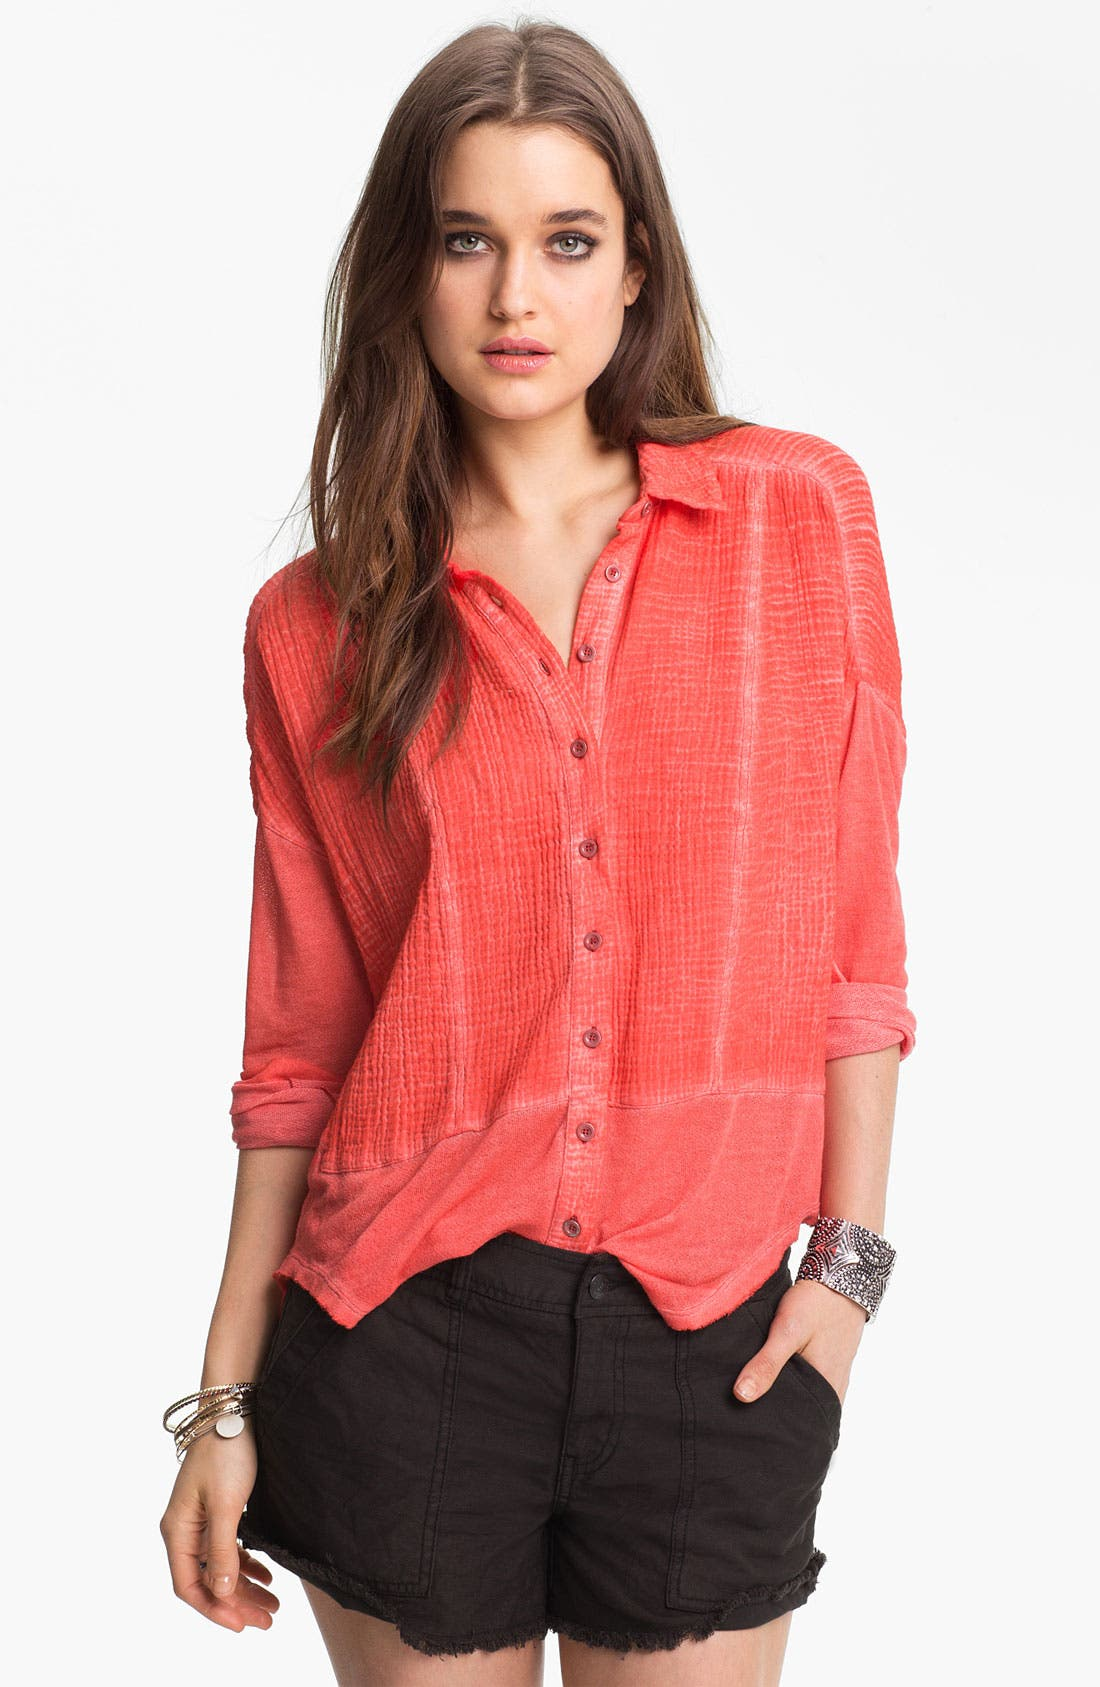 Alternate Image 1 Selected - Free People Mixed Texture Boxy Shirt